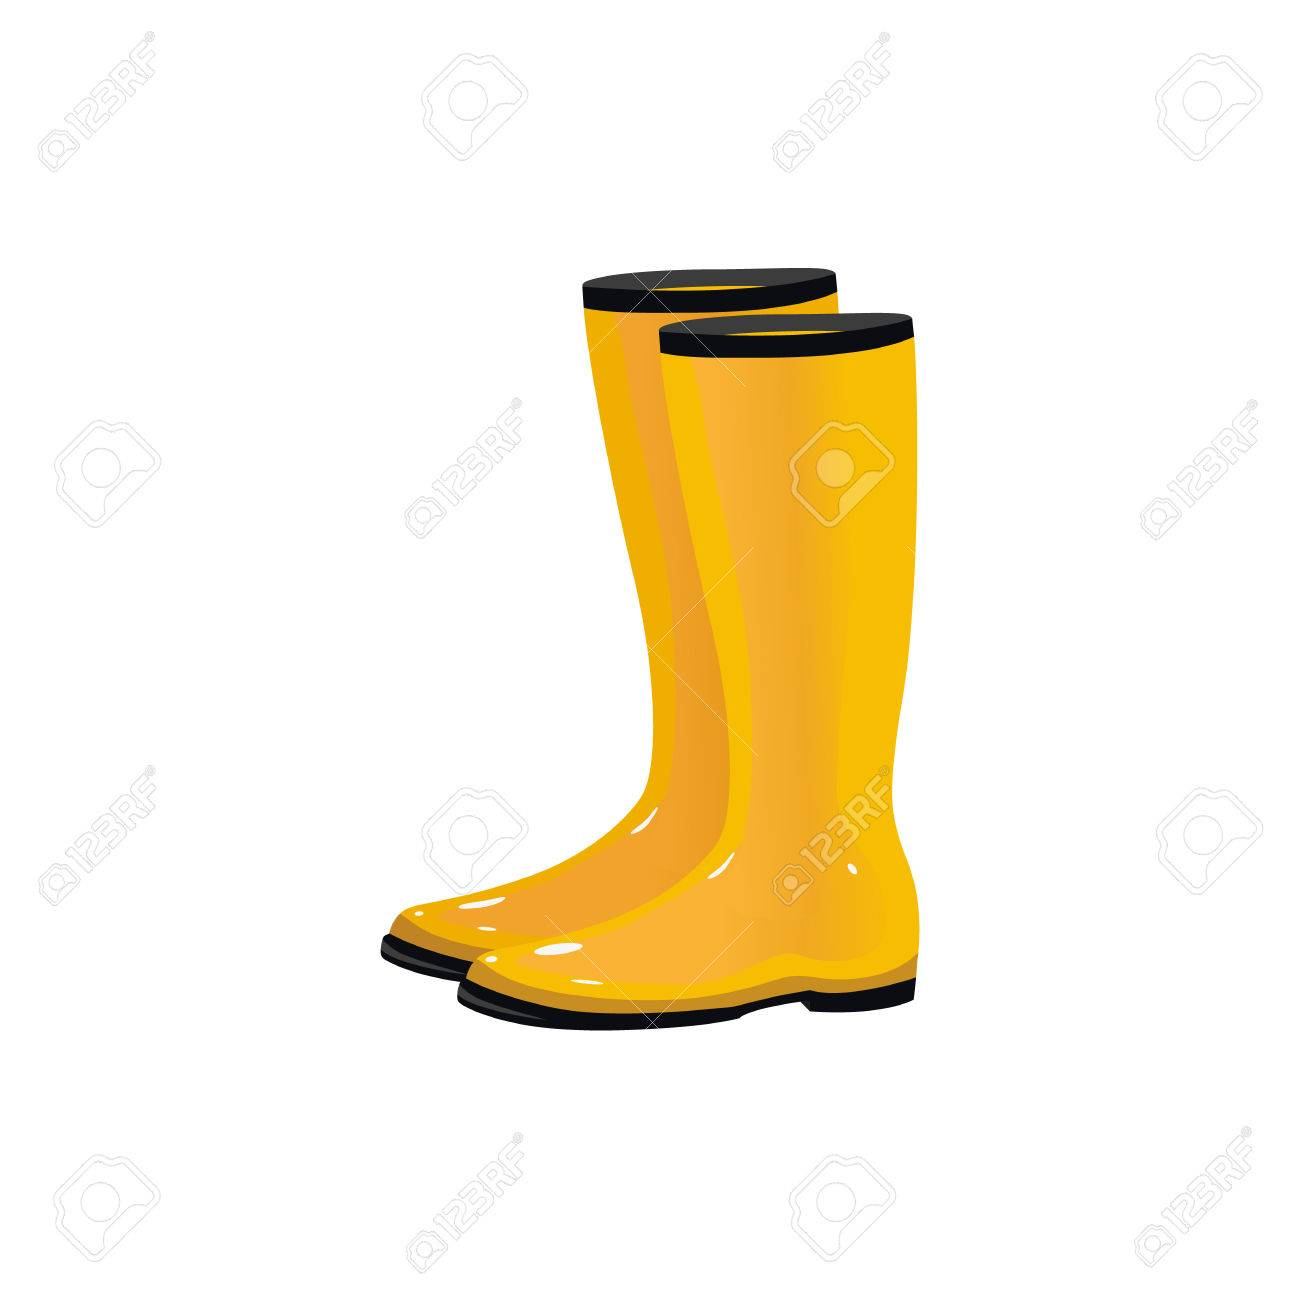 pair of yellow waterproof rain boots wellingtons typical autumn